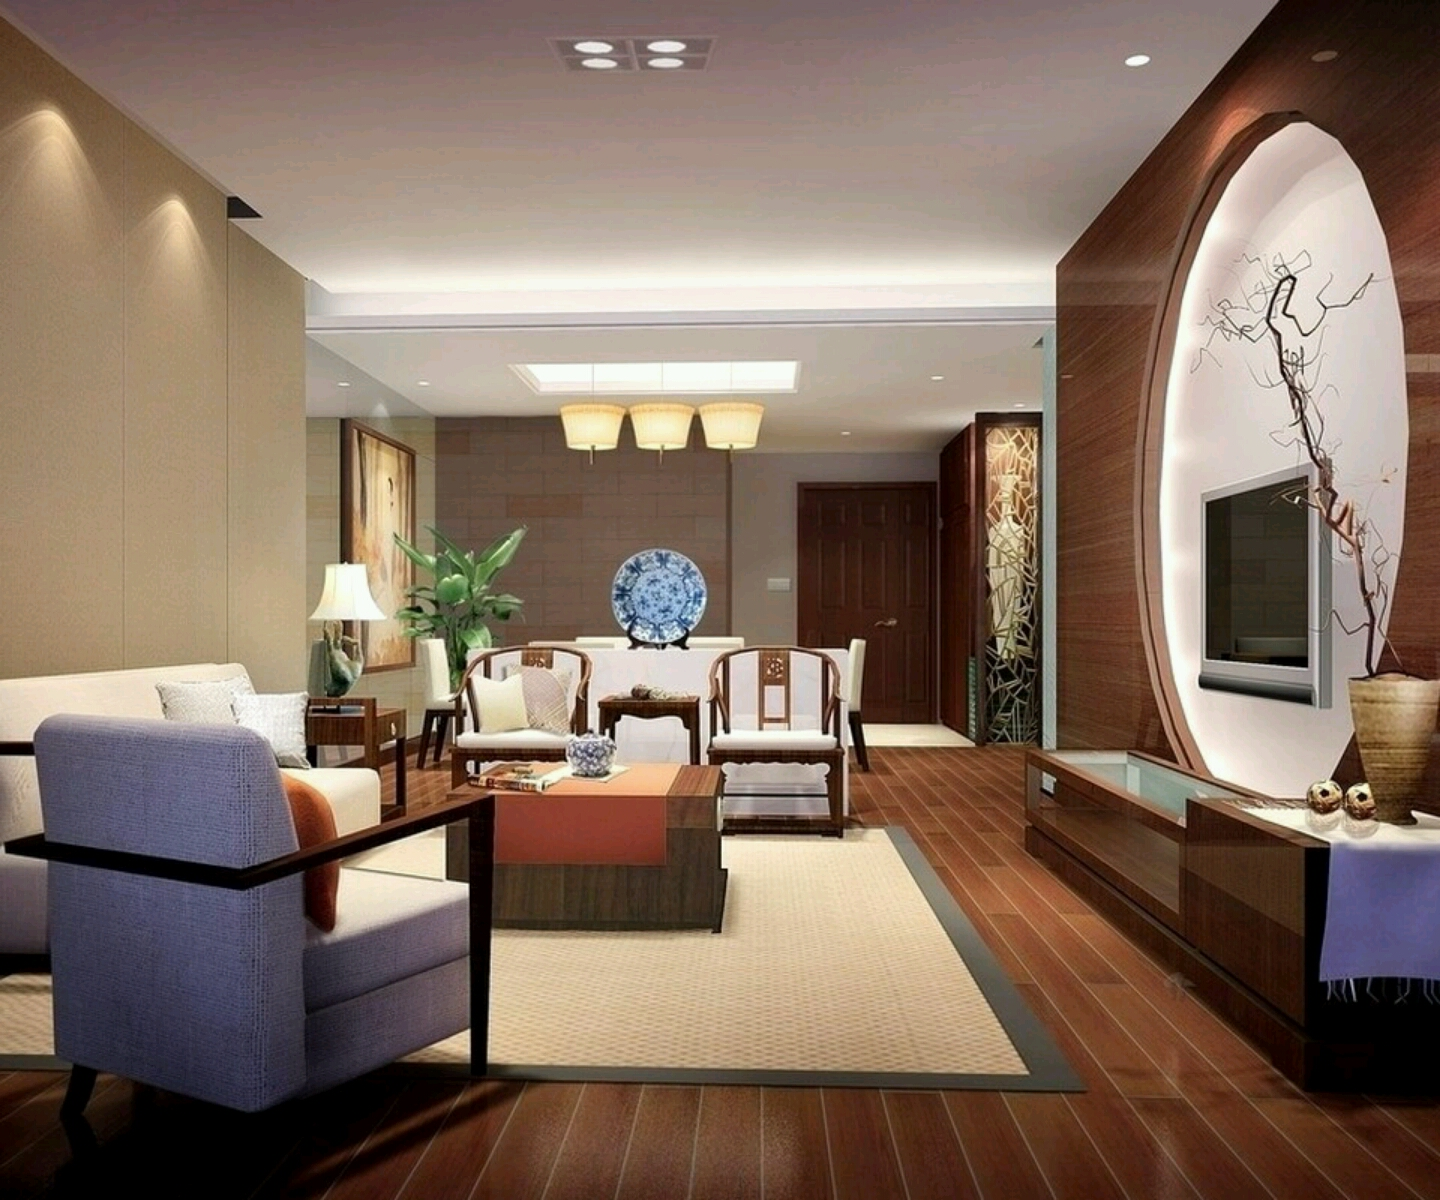 Luxury homes interior decoration living room designs ideas for Room interior decoration